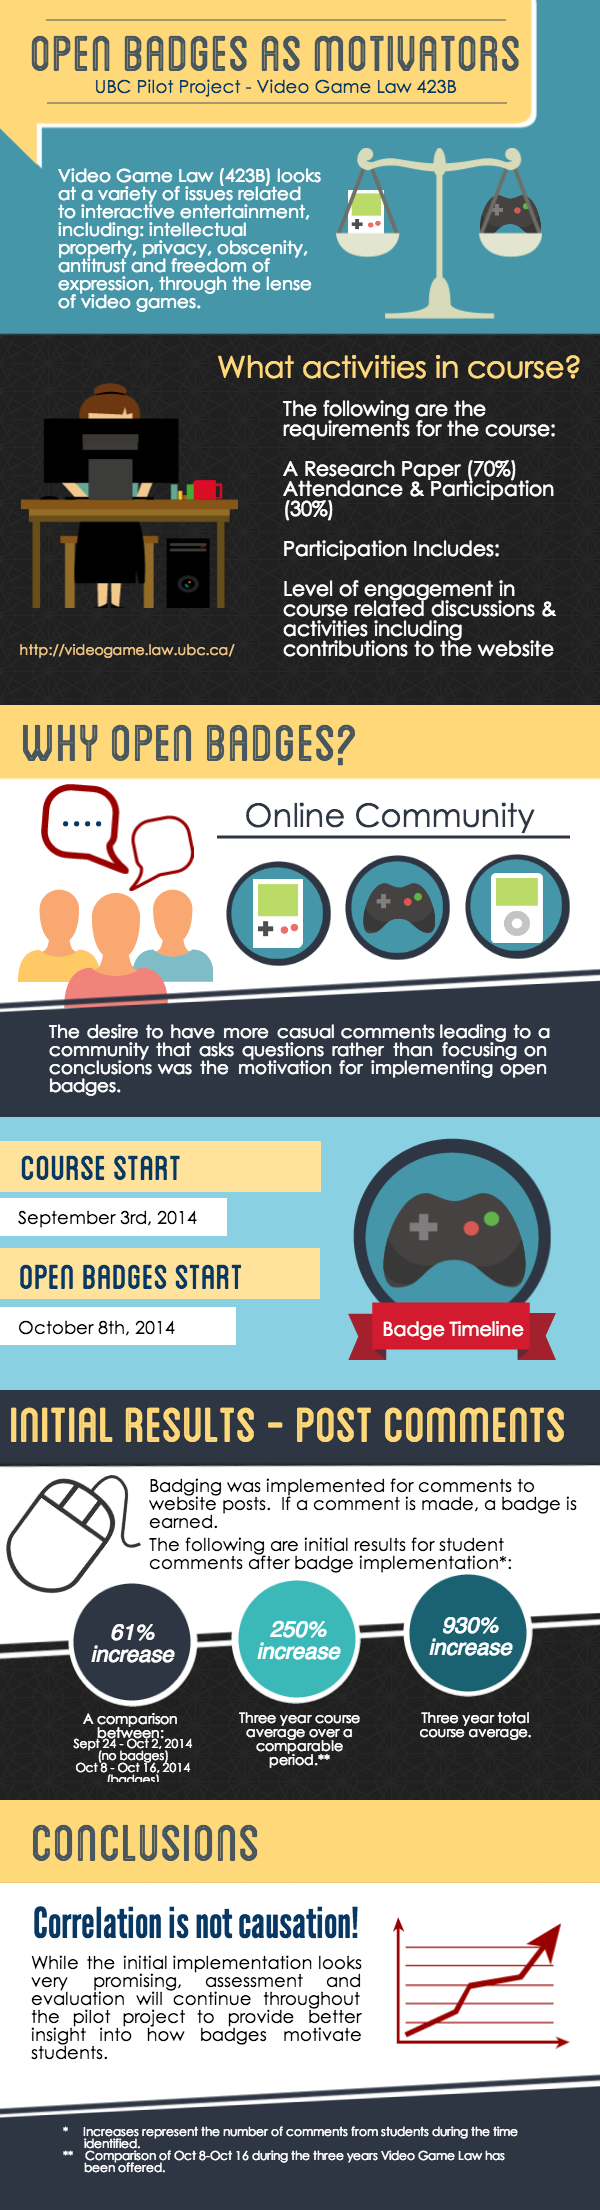 Open-Badges-Video-Game-Law